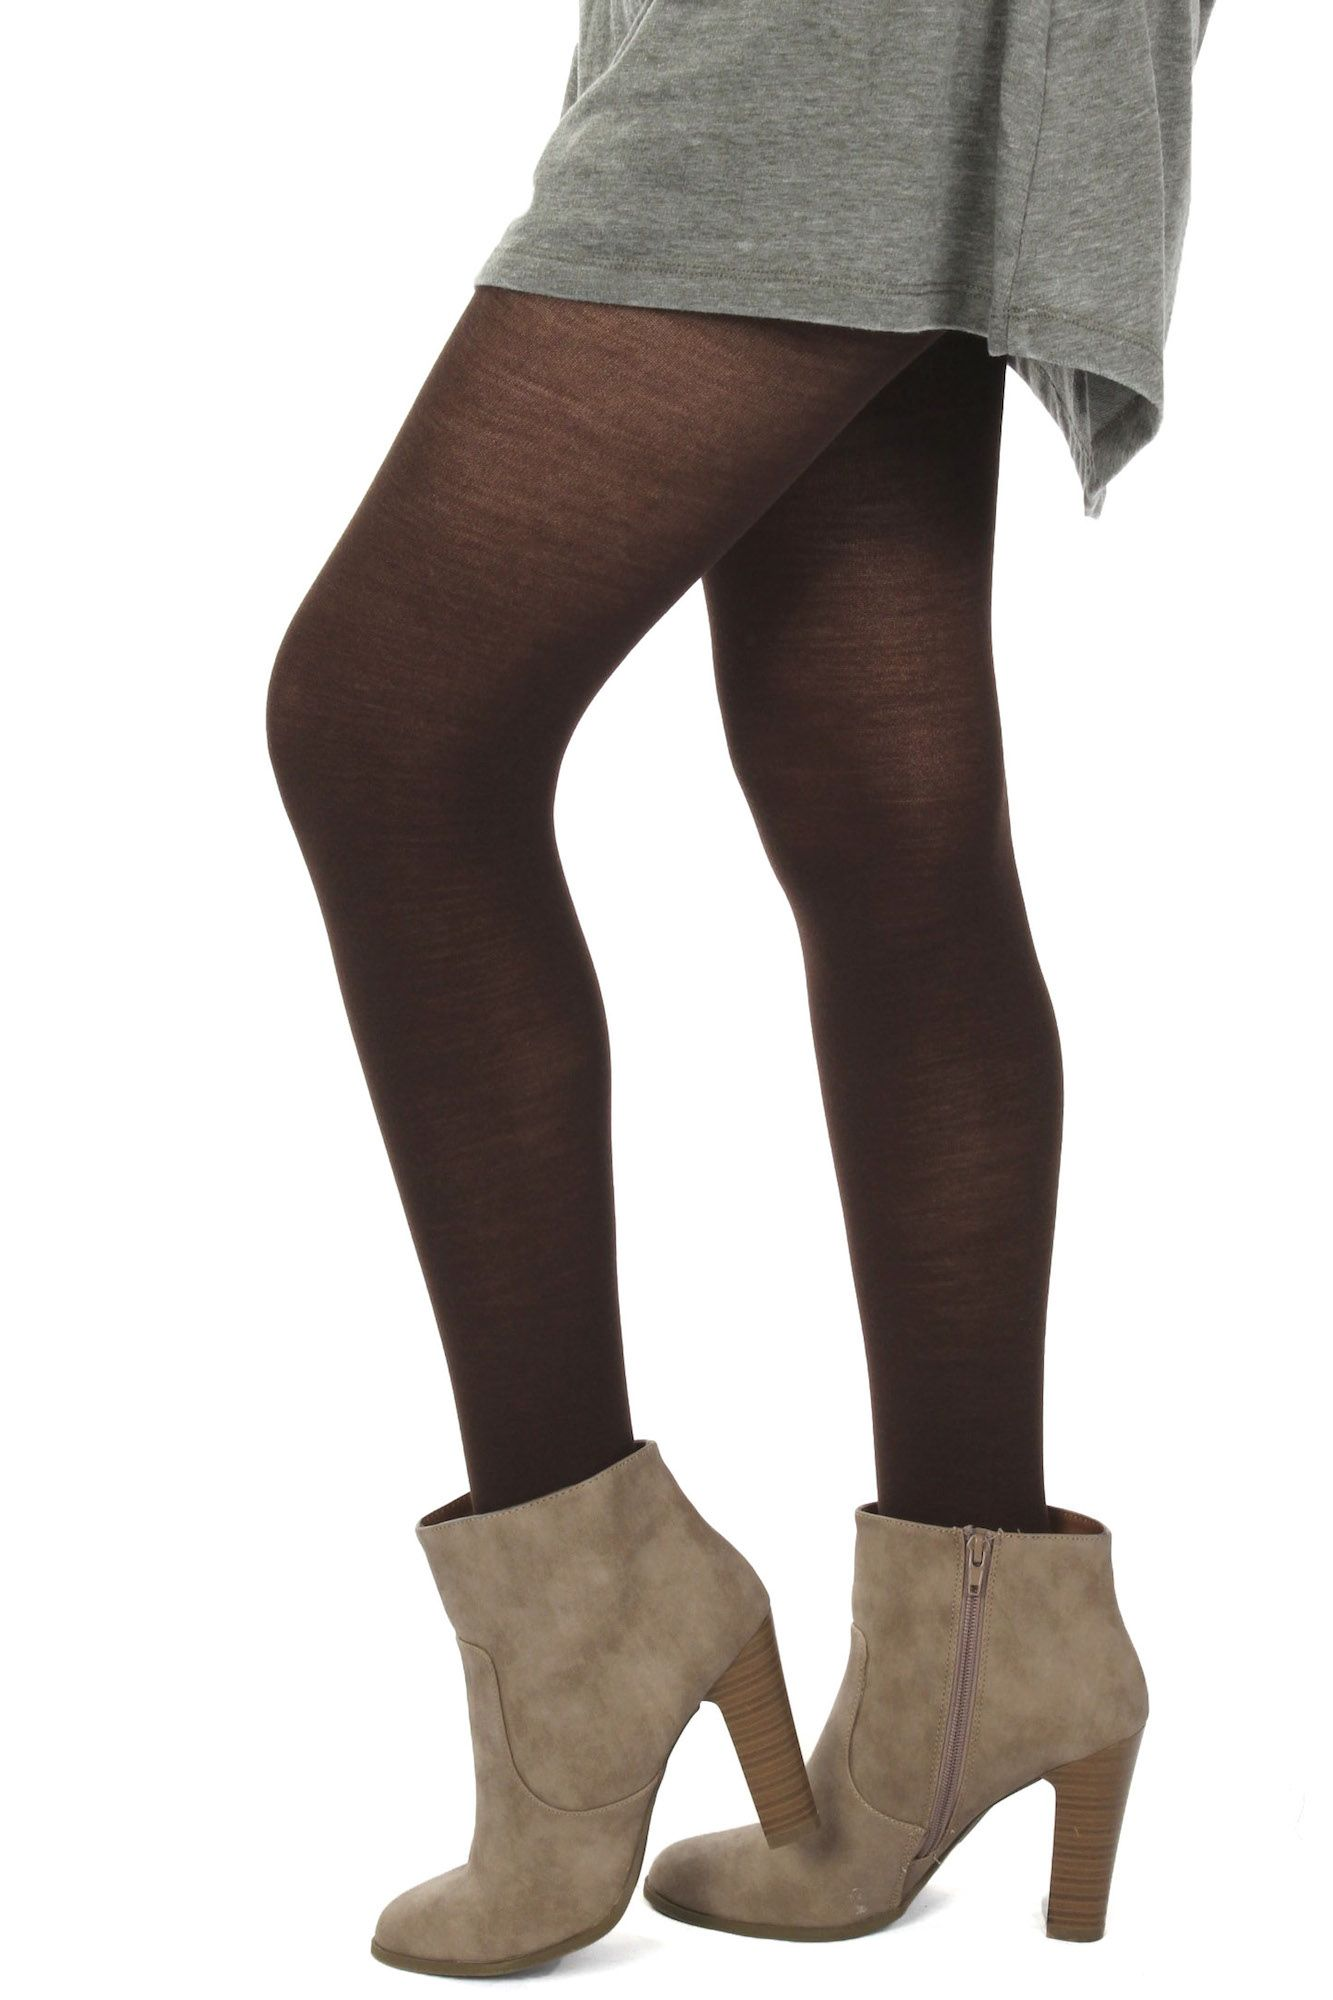 4f66731aad22b Wool Tights Brown $24.99 #sophieandtrey #leggings #tights #bottoms  #accessories #pantyhose #wool #cashmere